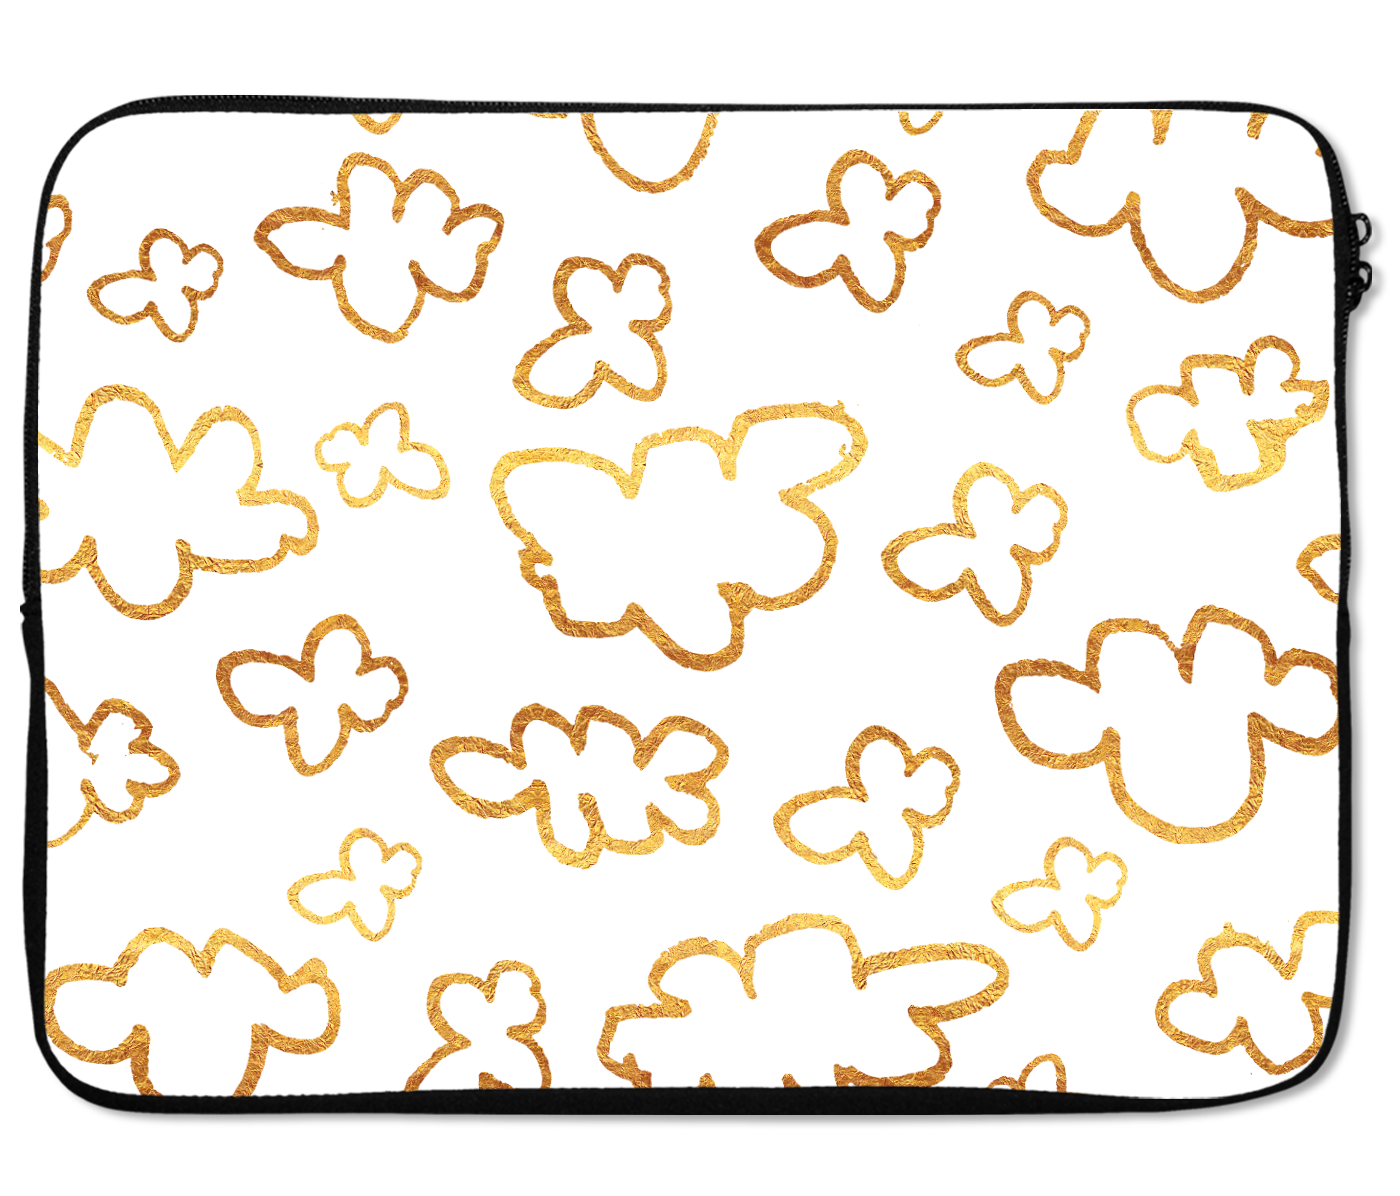 Laptops Tablet Sleeves Golden Cloud Pattern Premium Quality Neoprene Laptop Protection